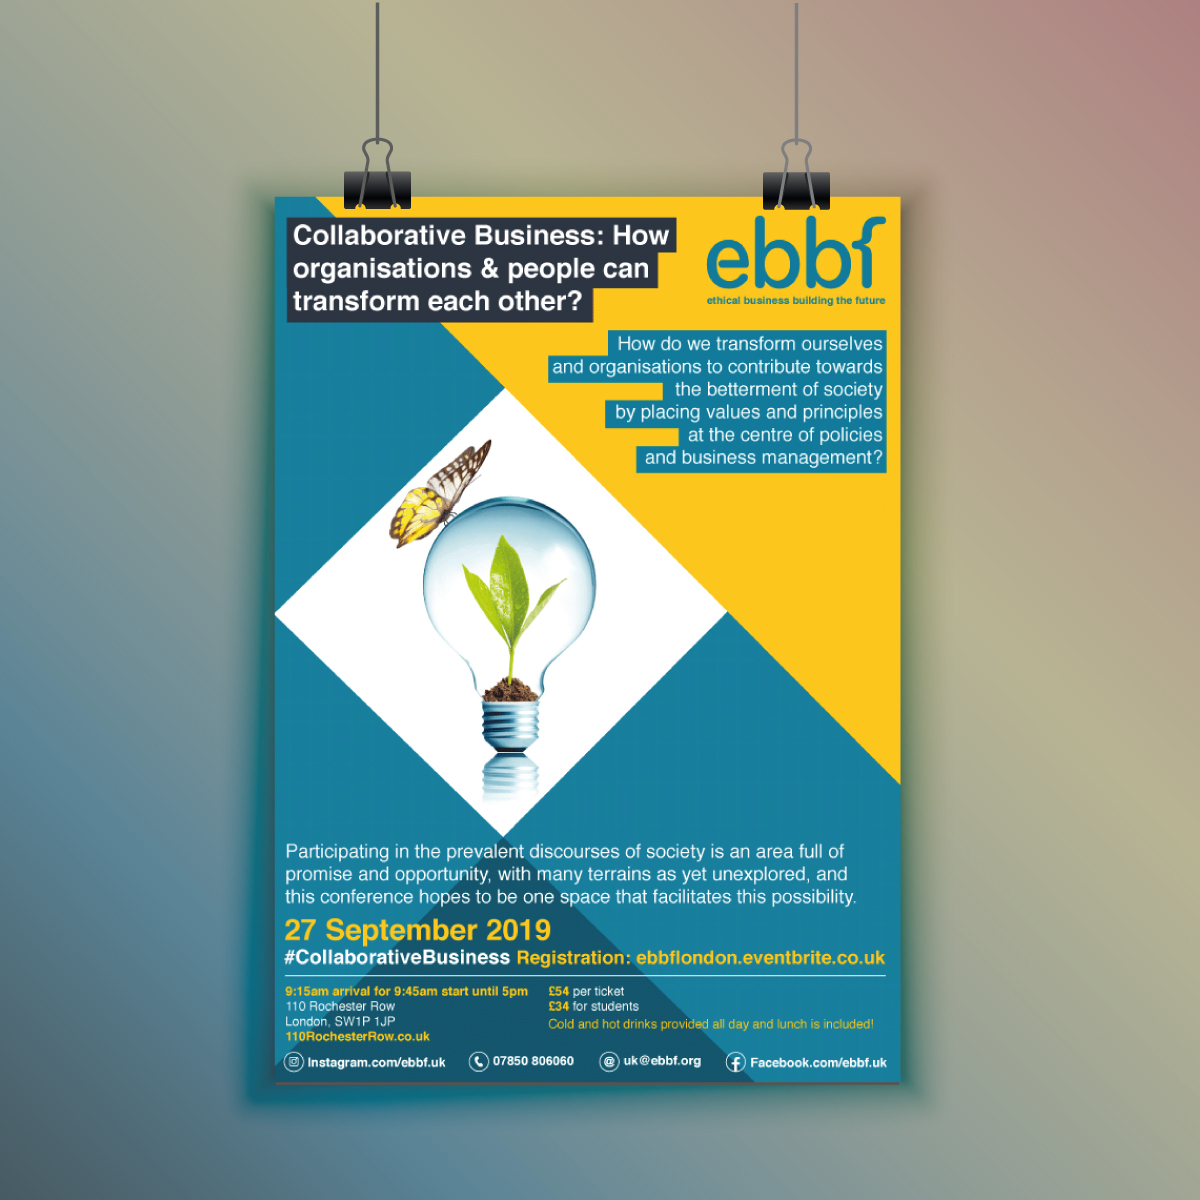 Ebbf poster design by Viviane Williams Consultancy